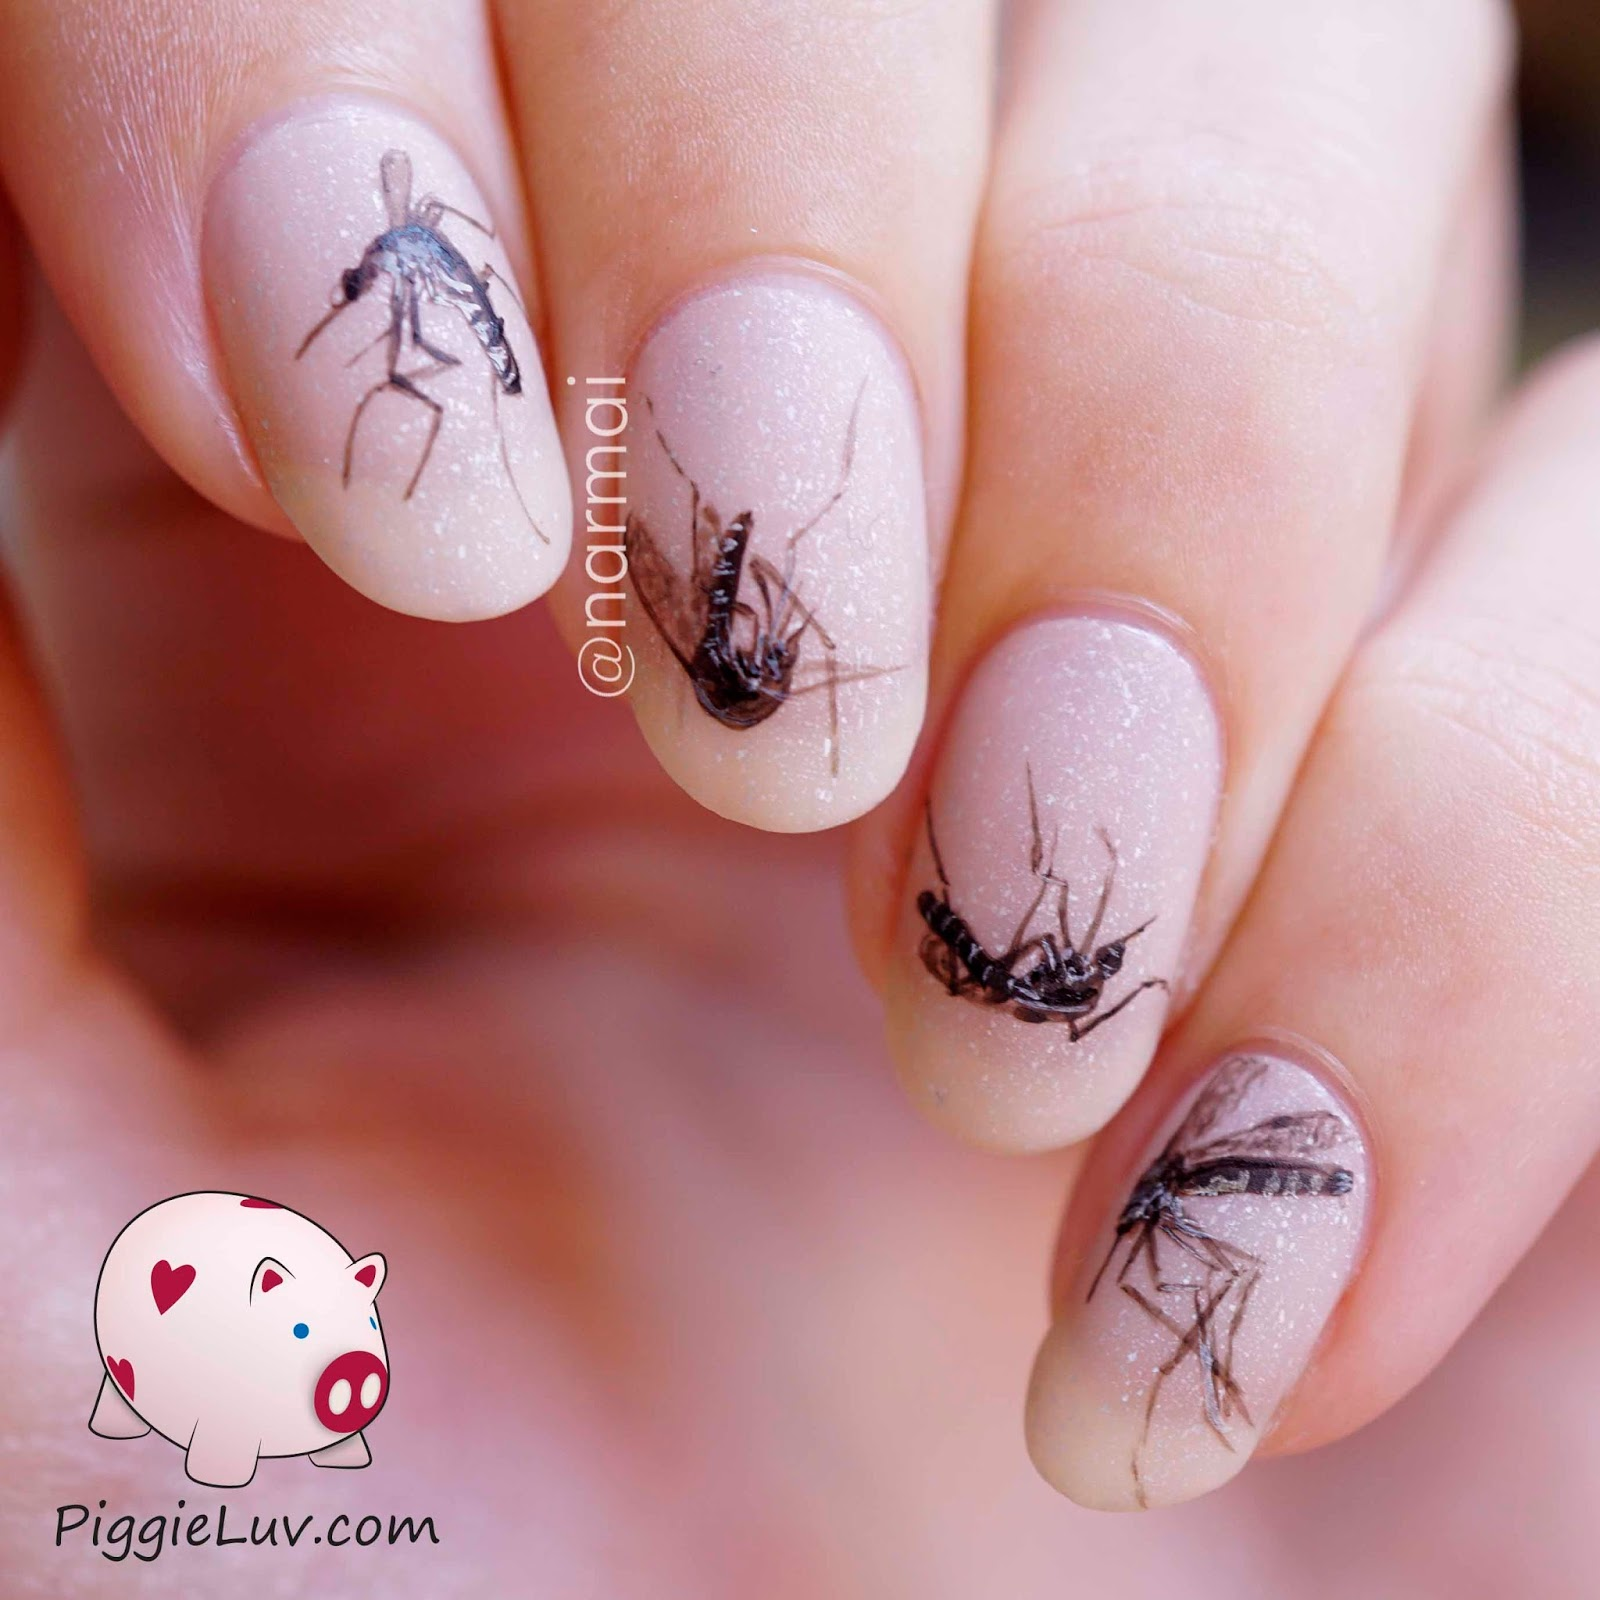 These Are Not Real Mosquitoes That I Glued To My Nails Haha Know Ve Done Some Weird Things In The Past But S A Bridge Too Far Even For Me